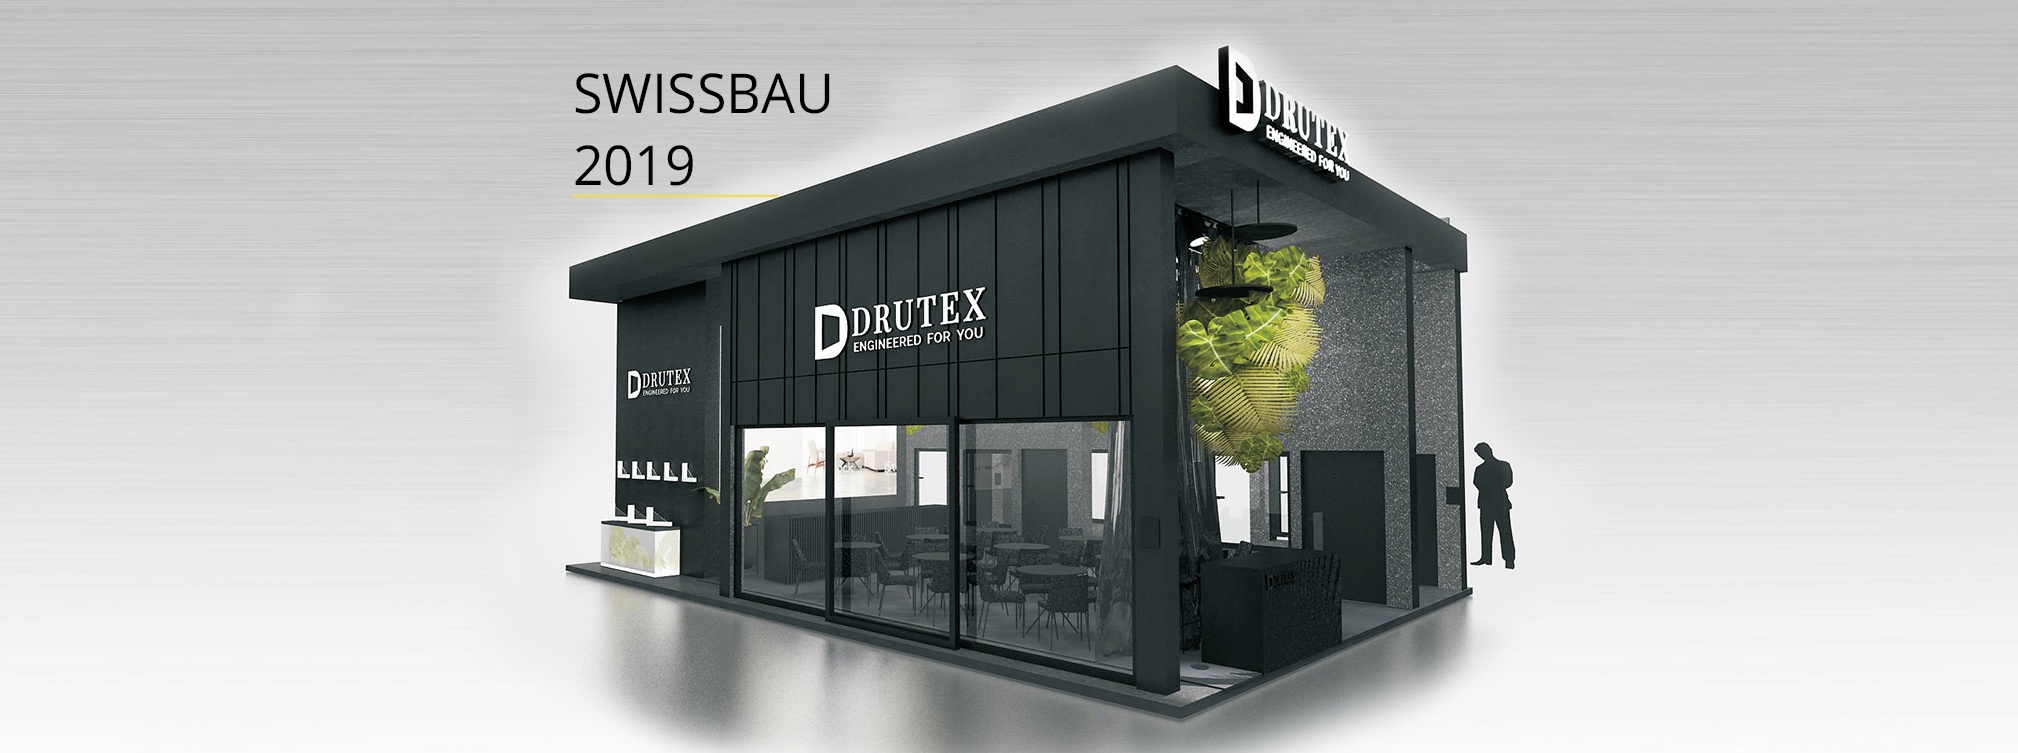 Drutex' debut at the SWISSBAU trade fair